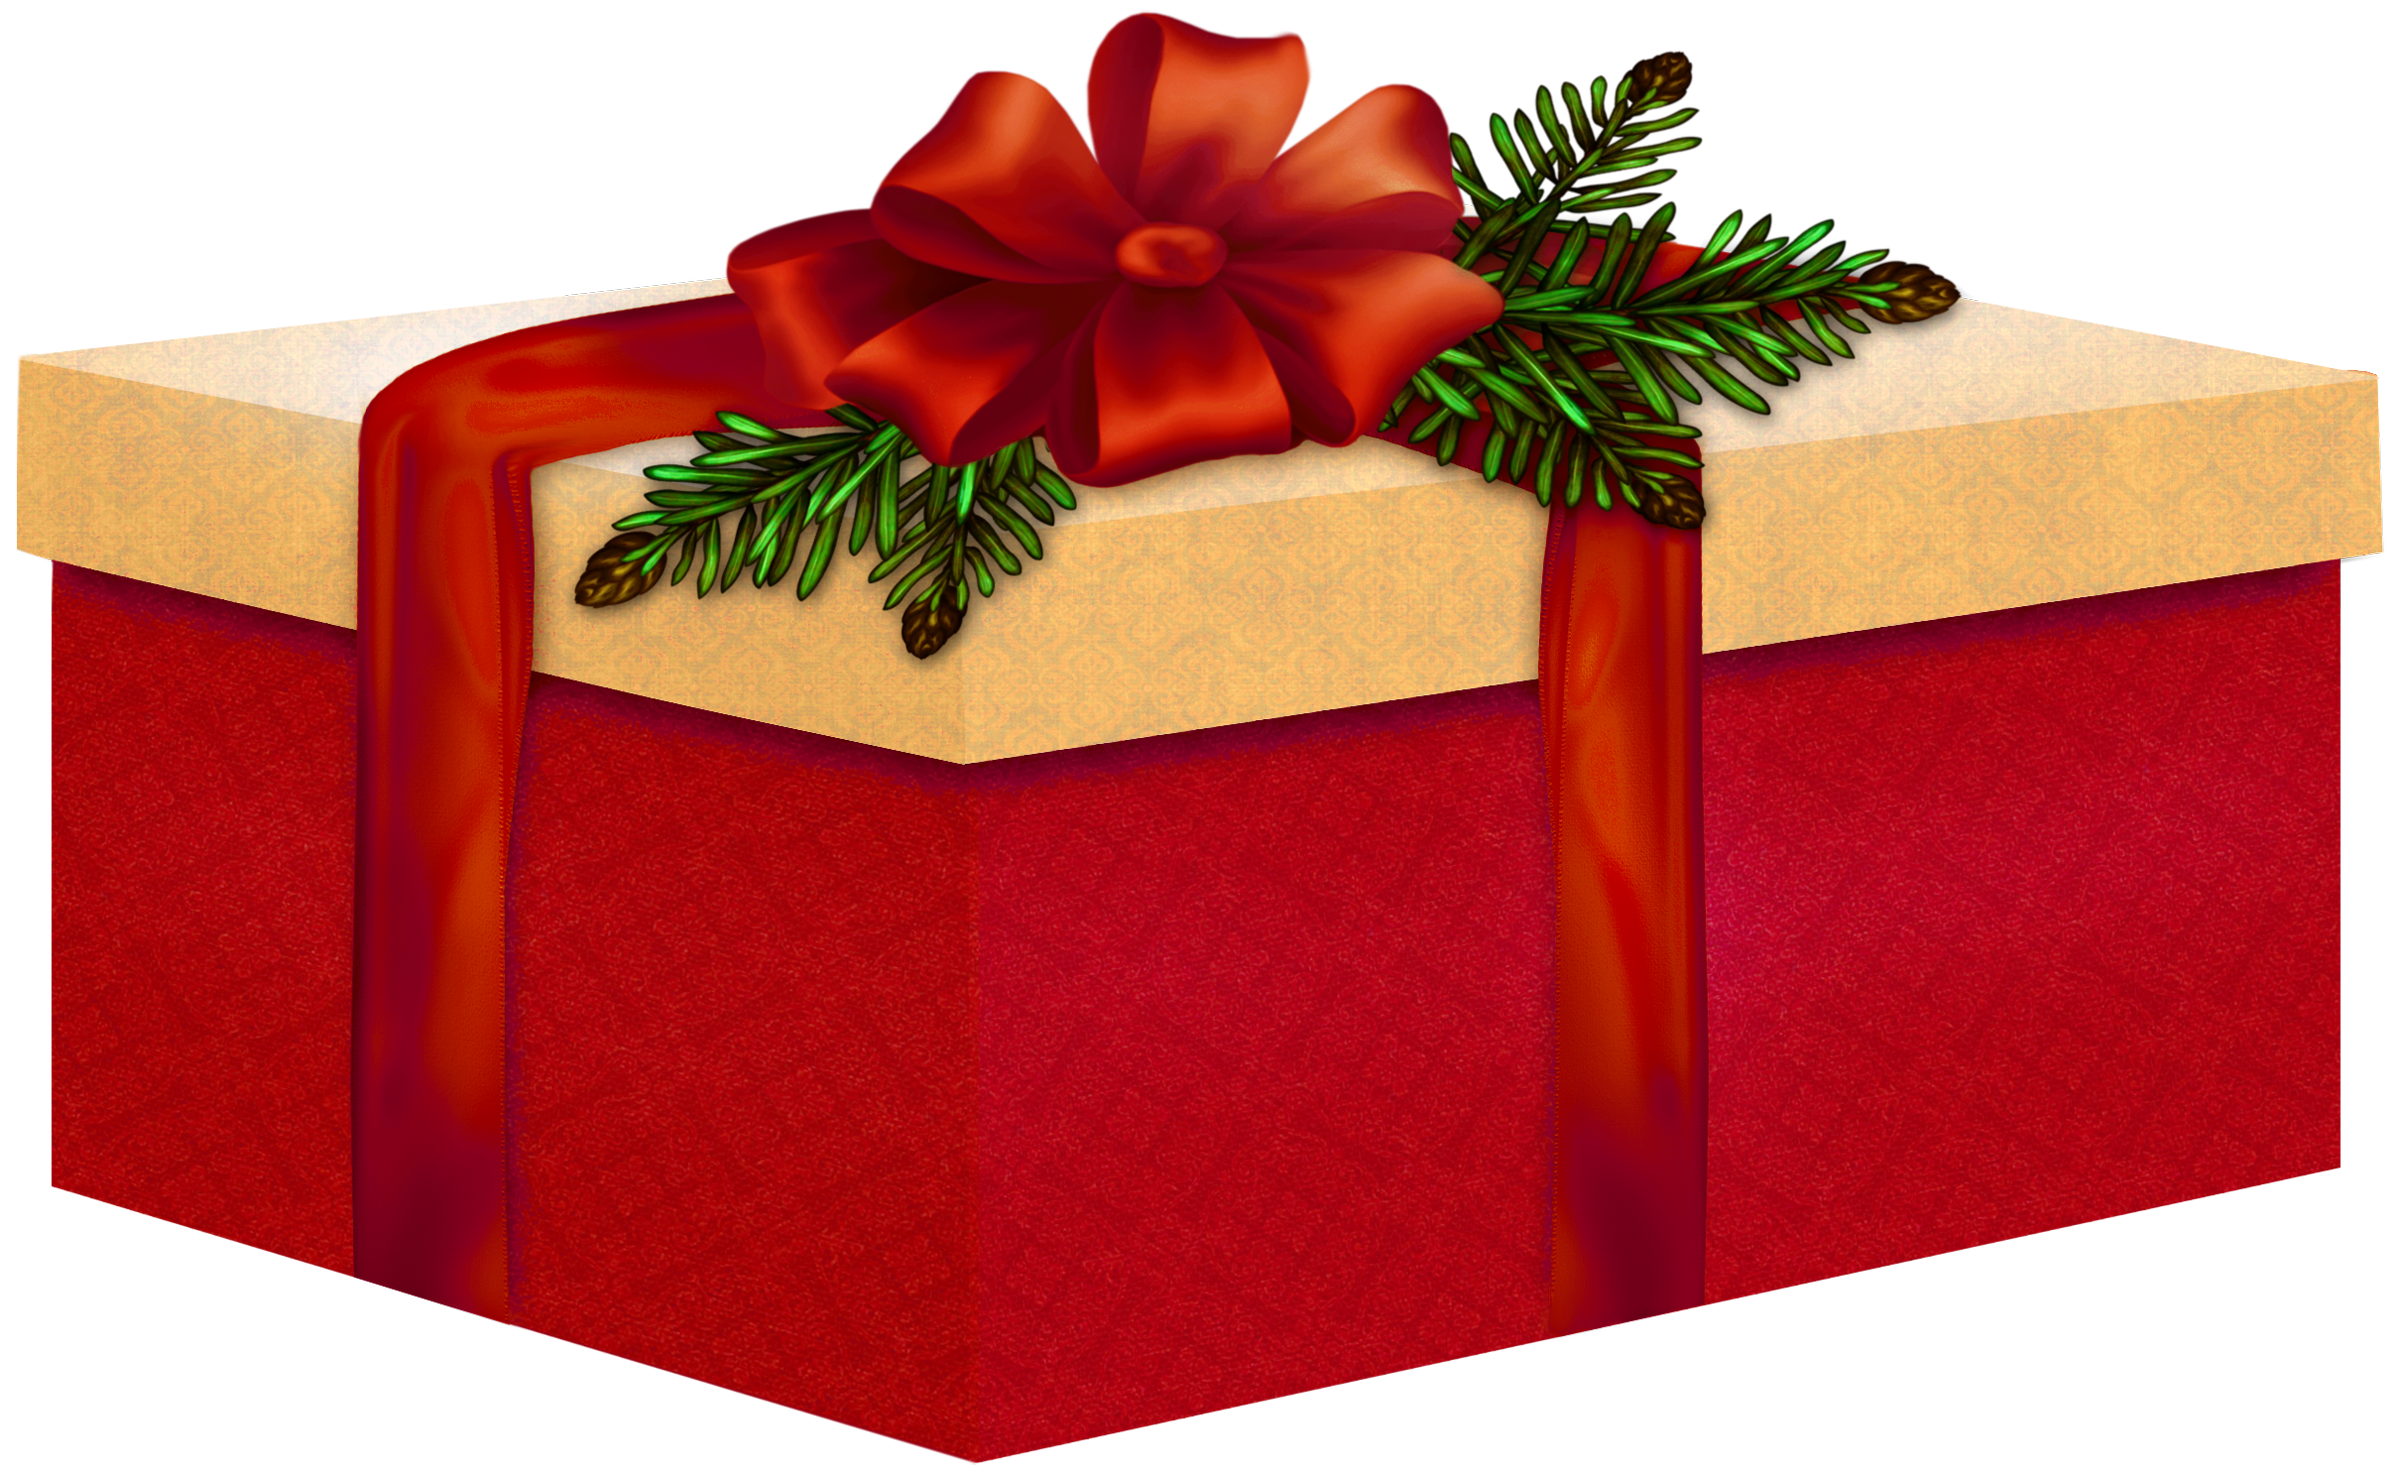 Christmas Presents Clipart.Open Christmas Present Transparent Png Clipart Free